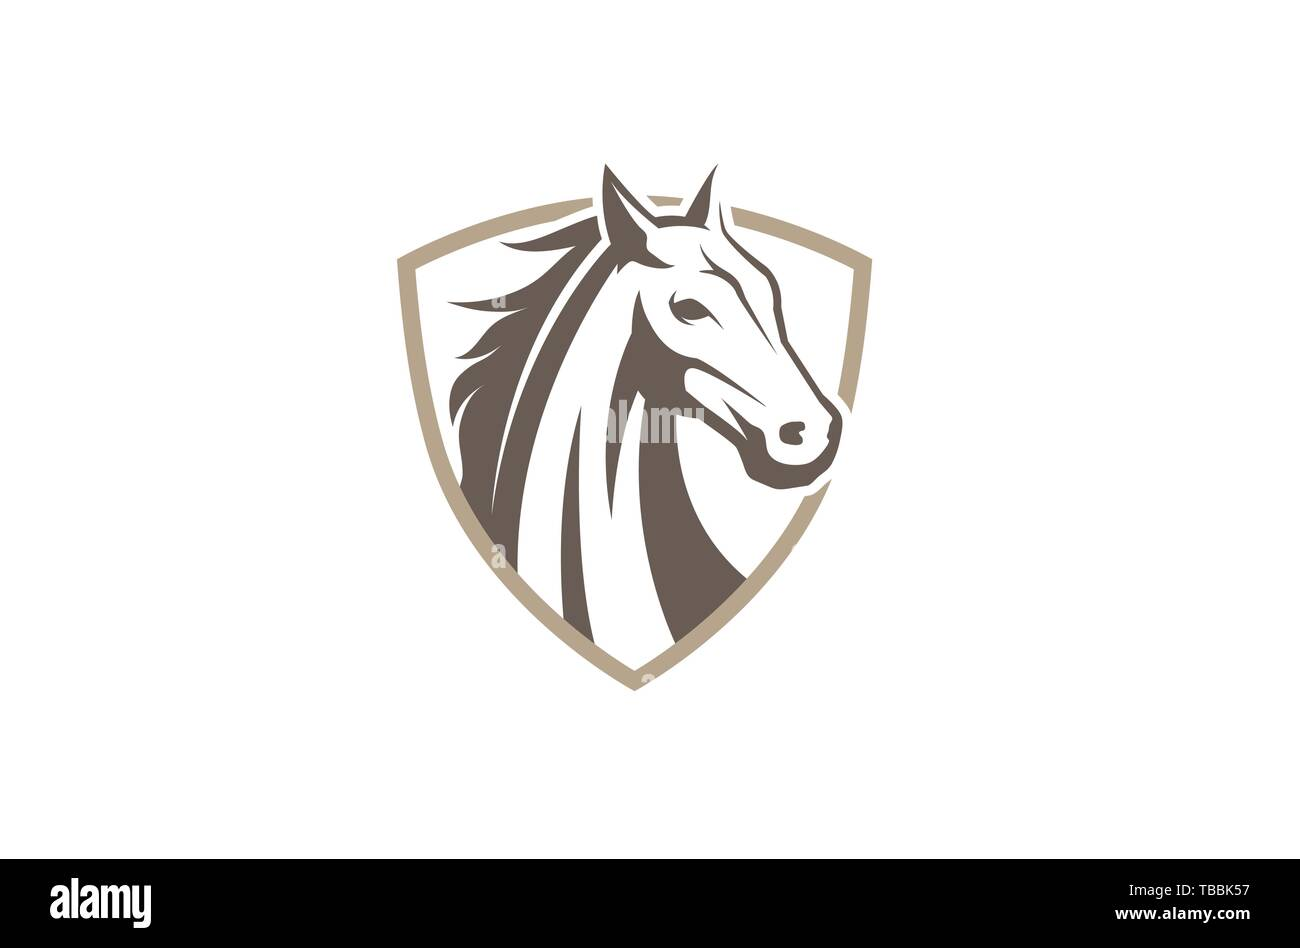 Creative Horse Shield Logo Design Symbol Vector Illustration Stock Vector Image Art Alamy